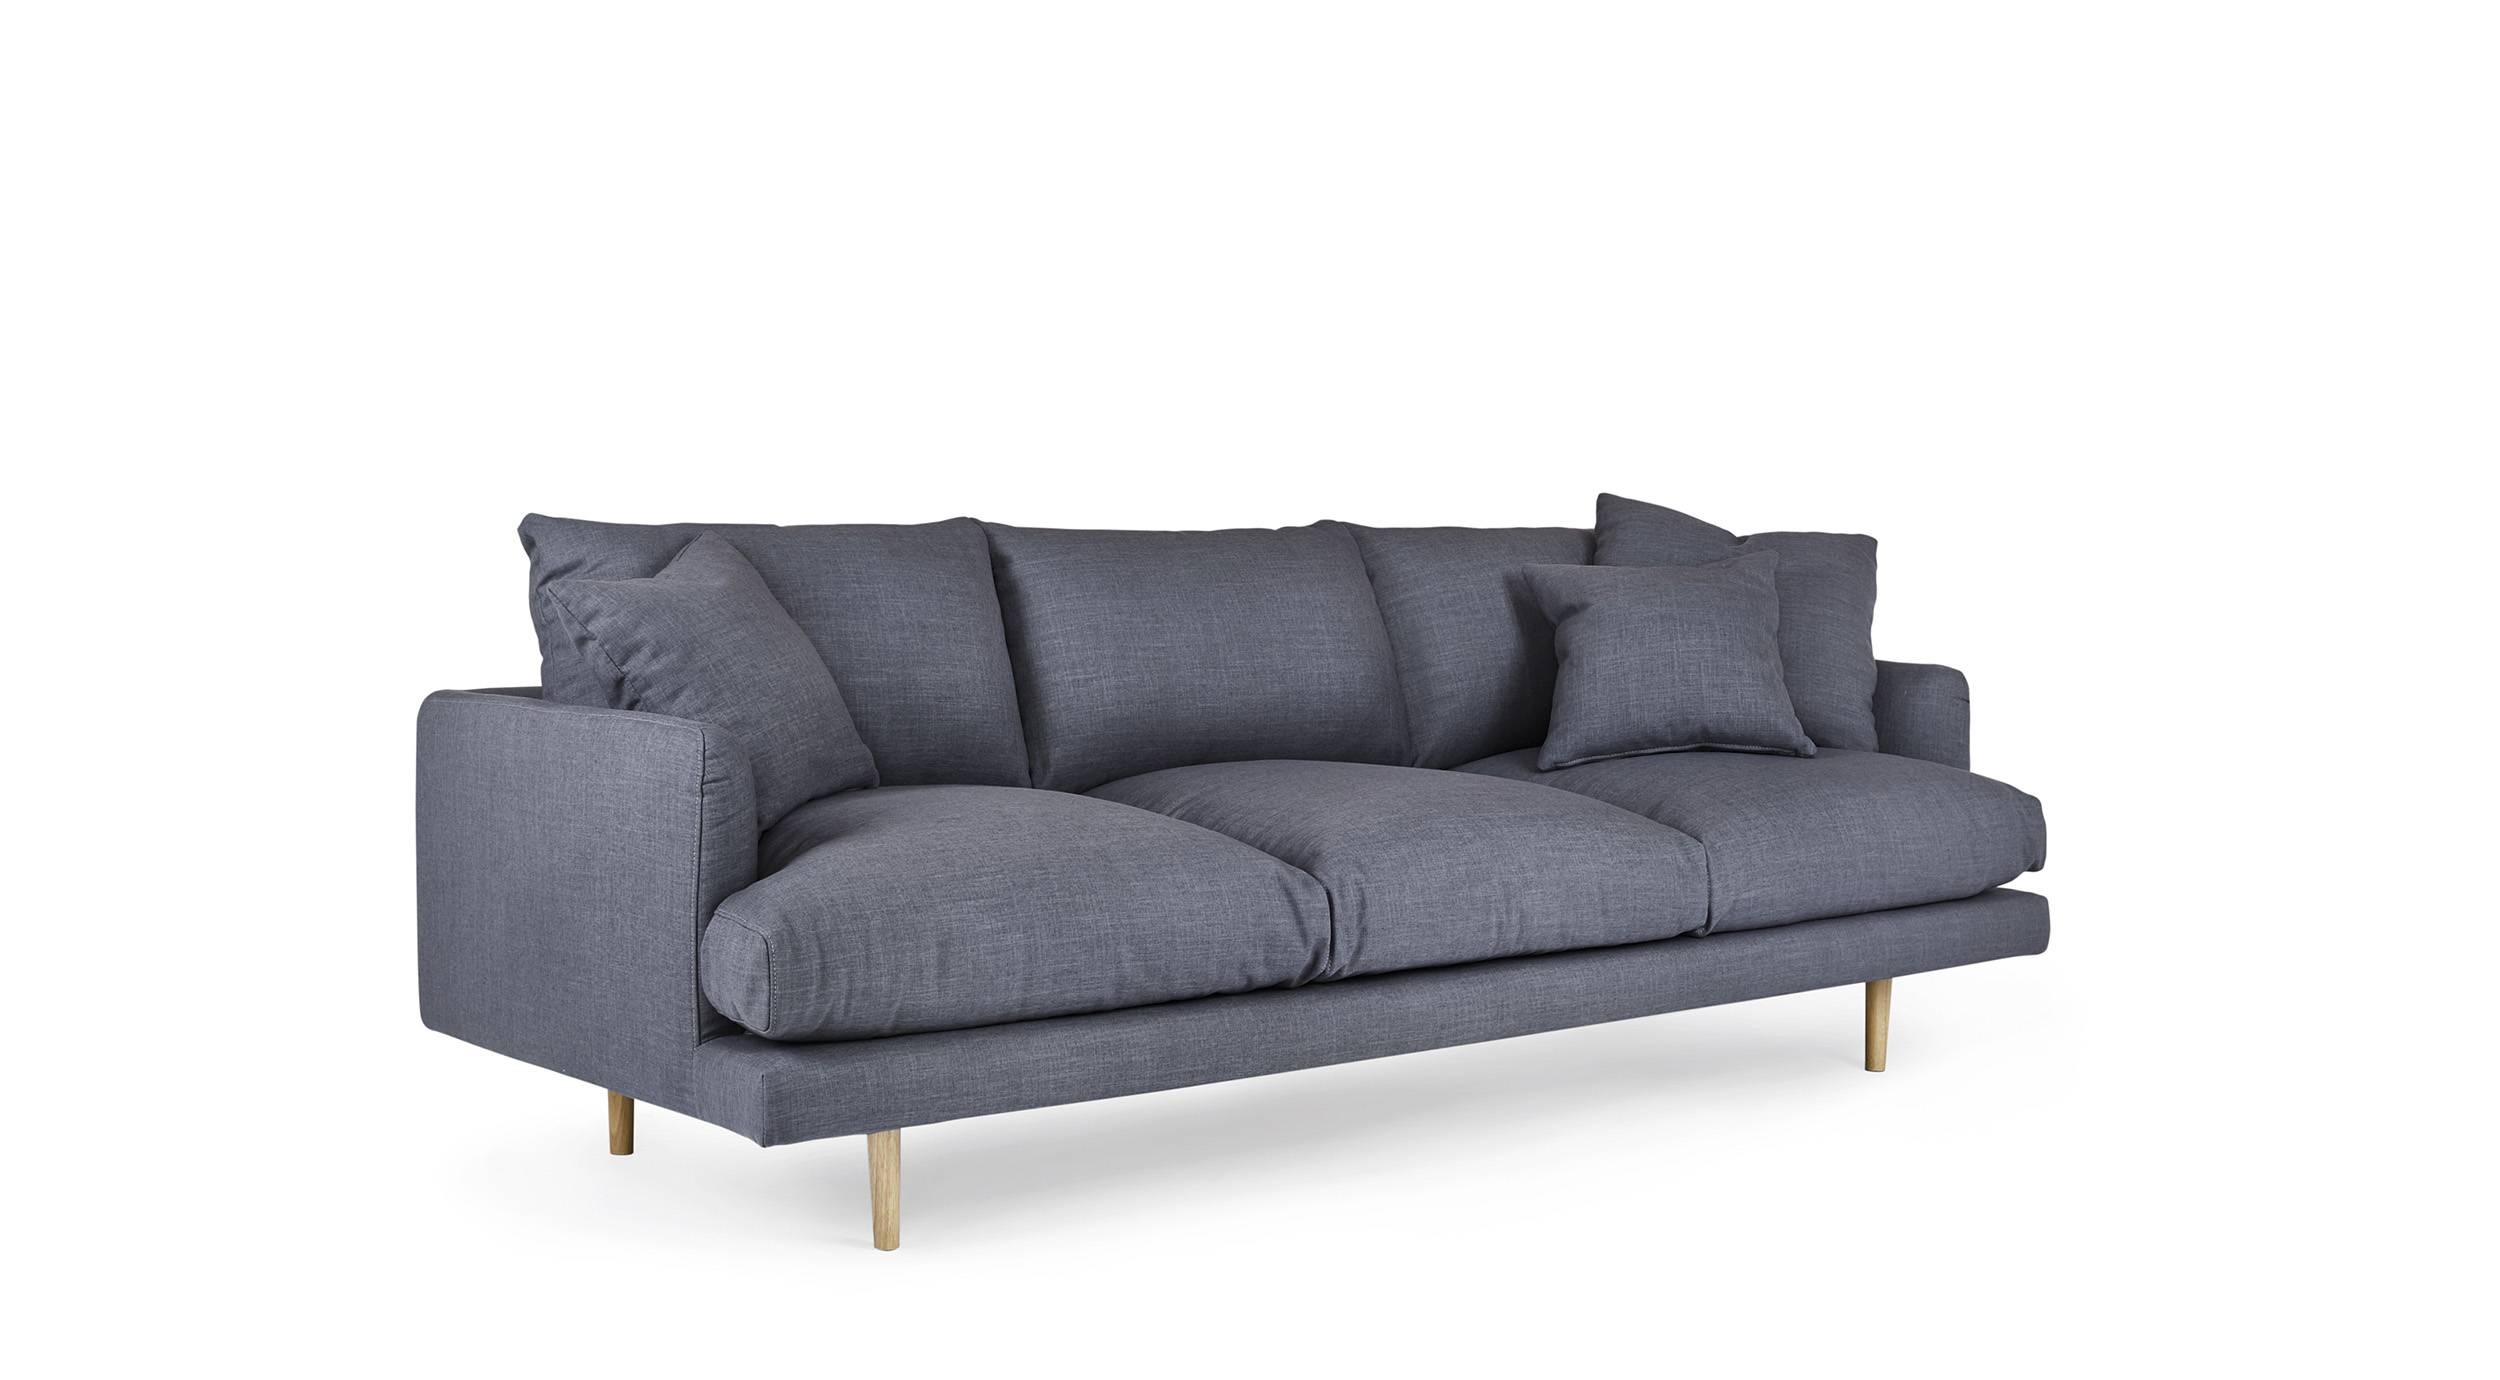 Hampton - 4 Seat Sofa | Loungelovers pertaining to 4 Seater Couch (Image 17 of 30)